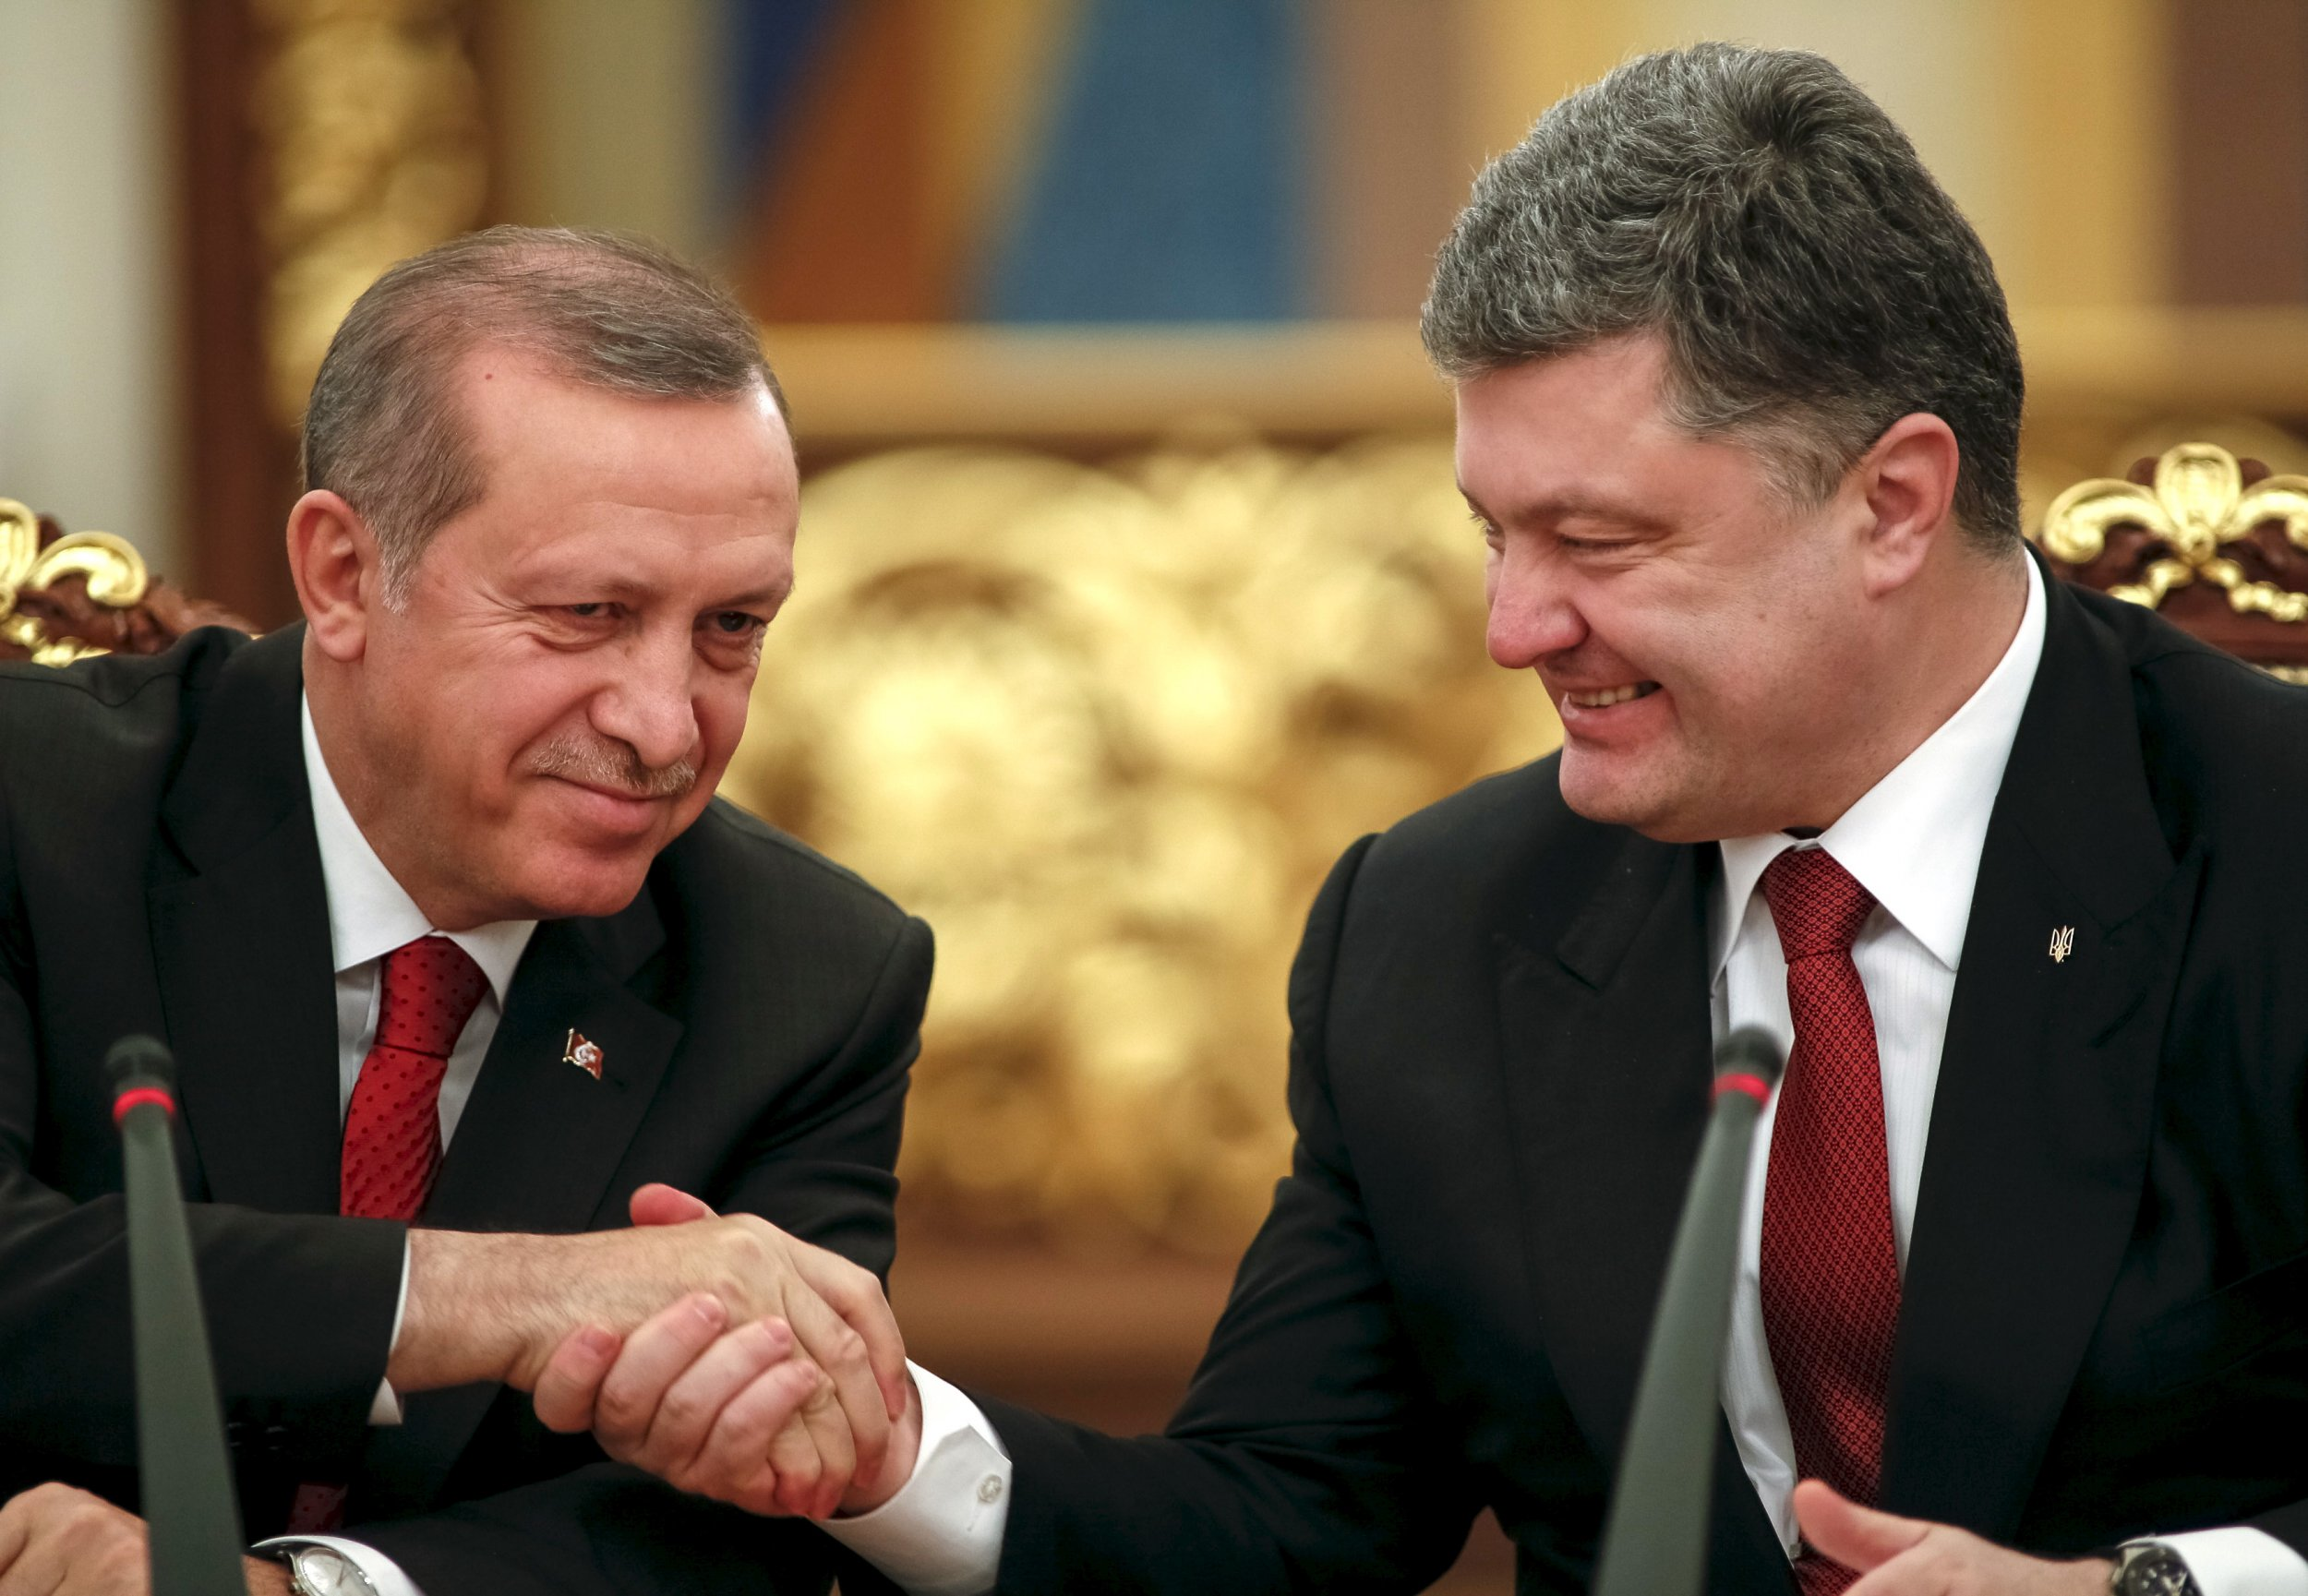 Erdogan and Poroshenko shake hands